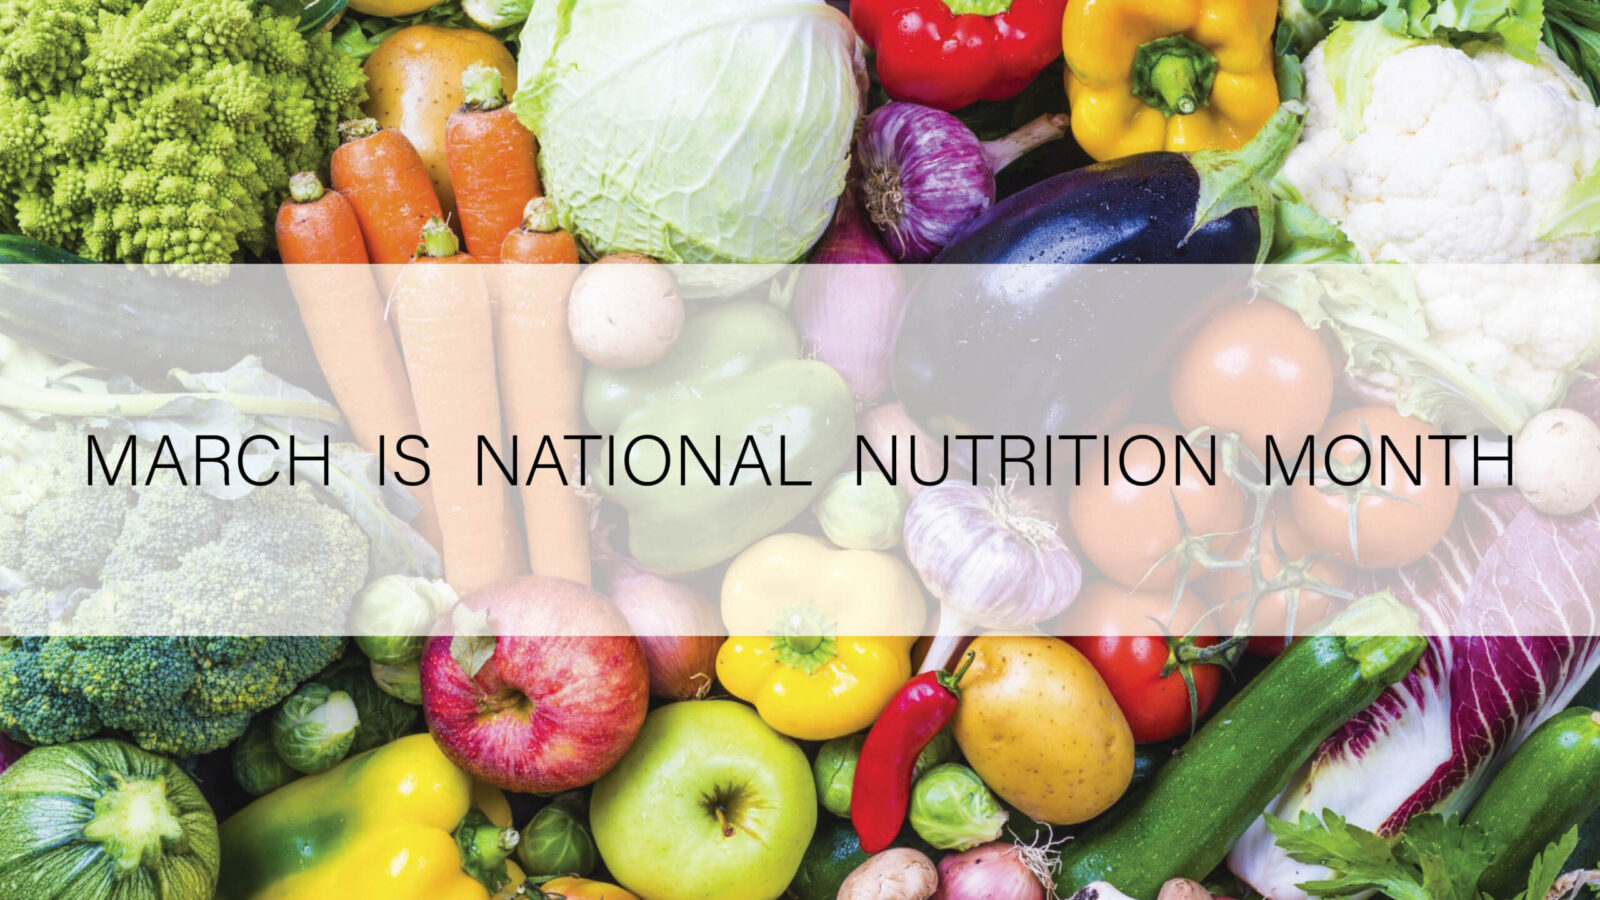 National Nutrition Month Blue Cirrus Consulting